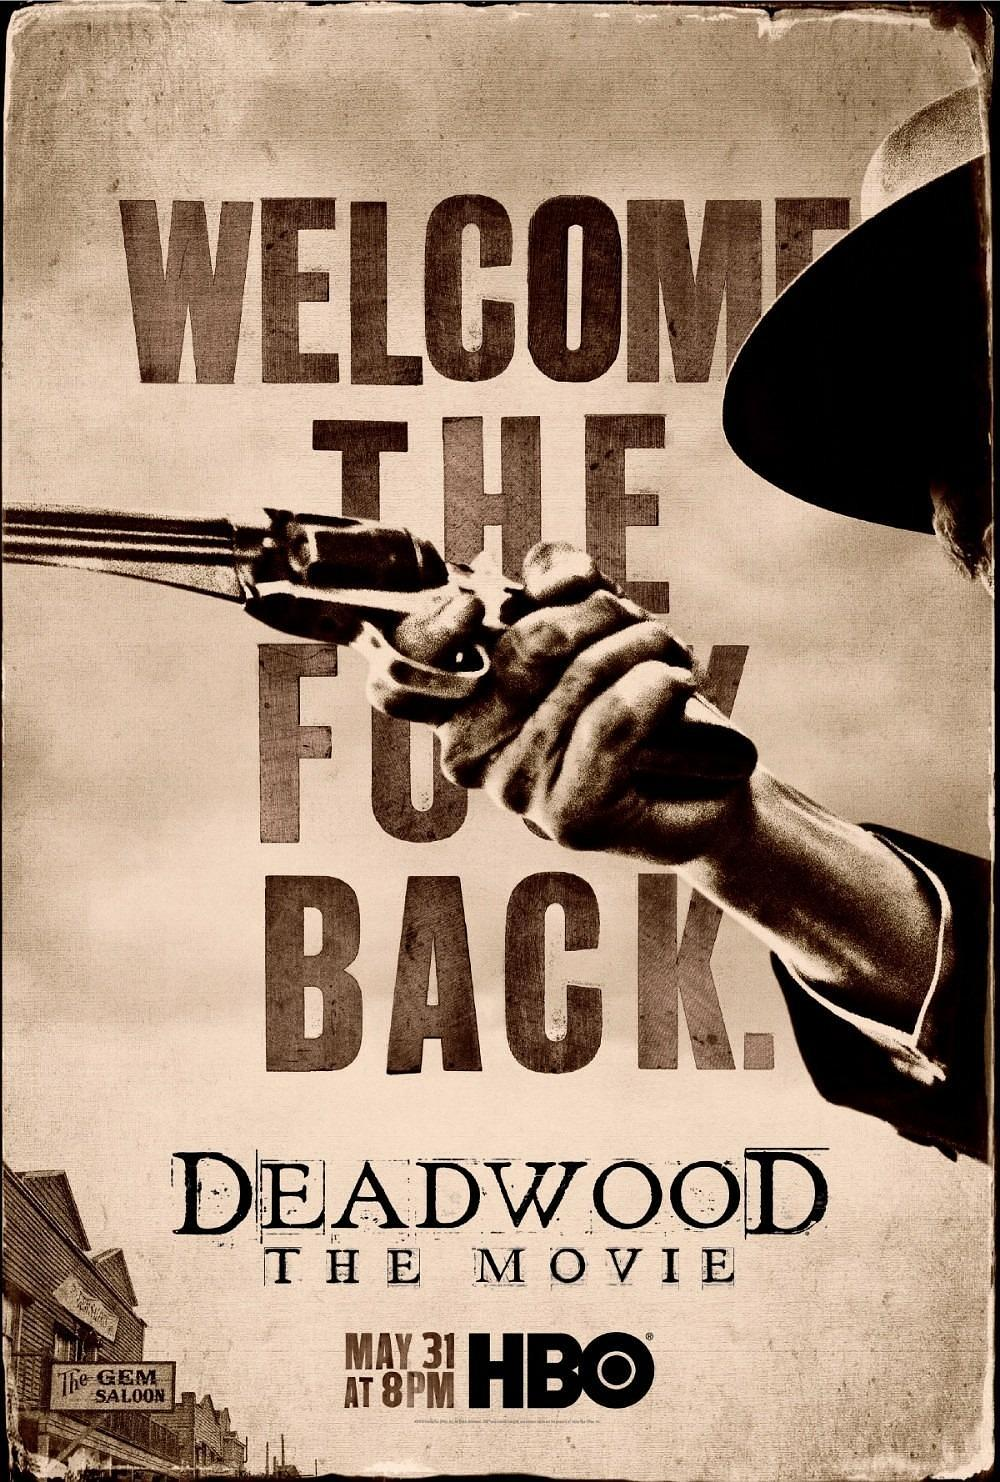 悠悠MP4_MP4电影下载_朽木/化外国度电影版 Deadwood.The.Movie.2019.1080p.BluRay.x264-PFa 7.63GB